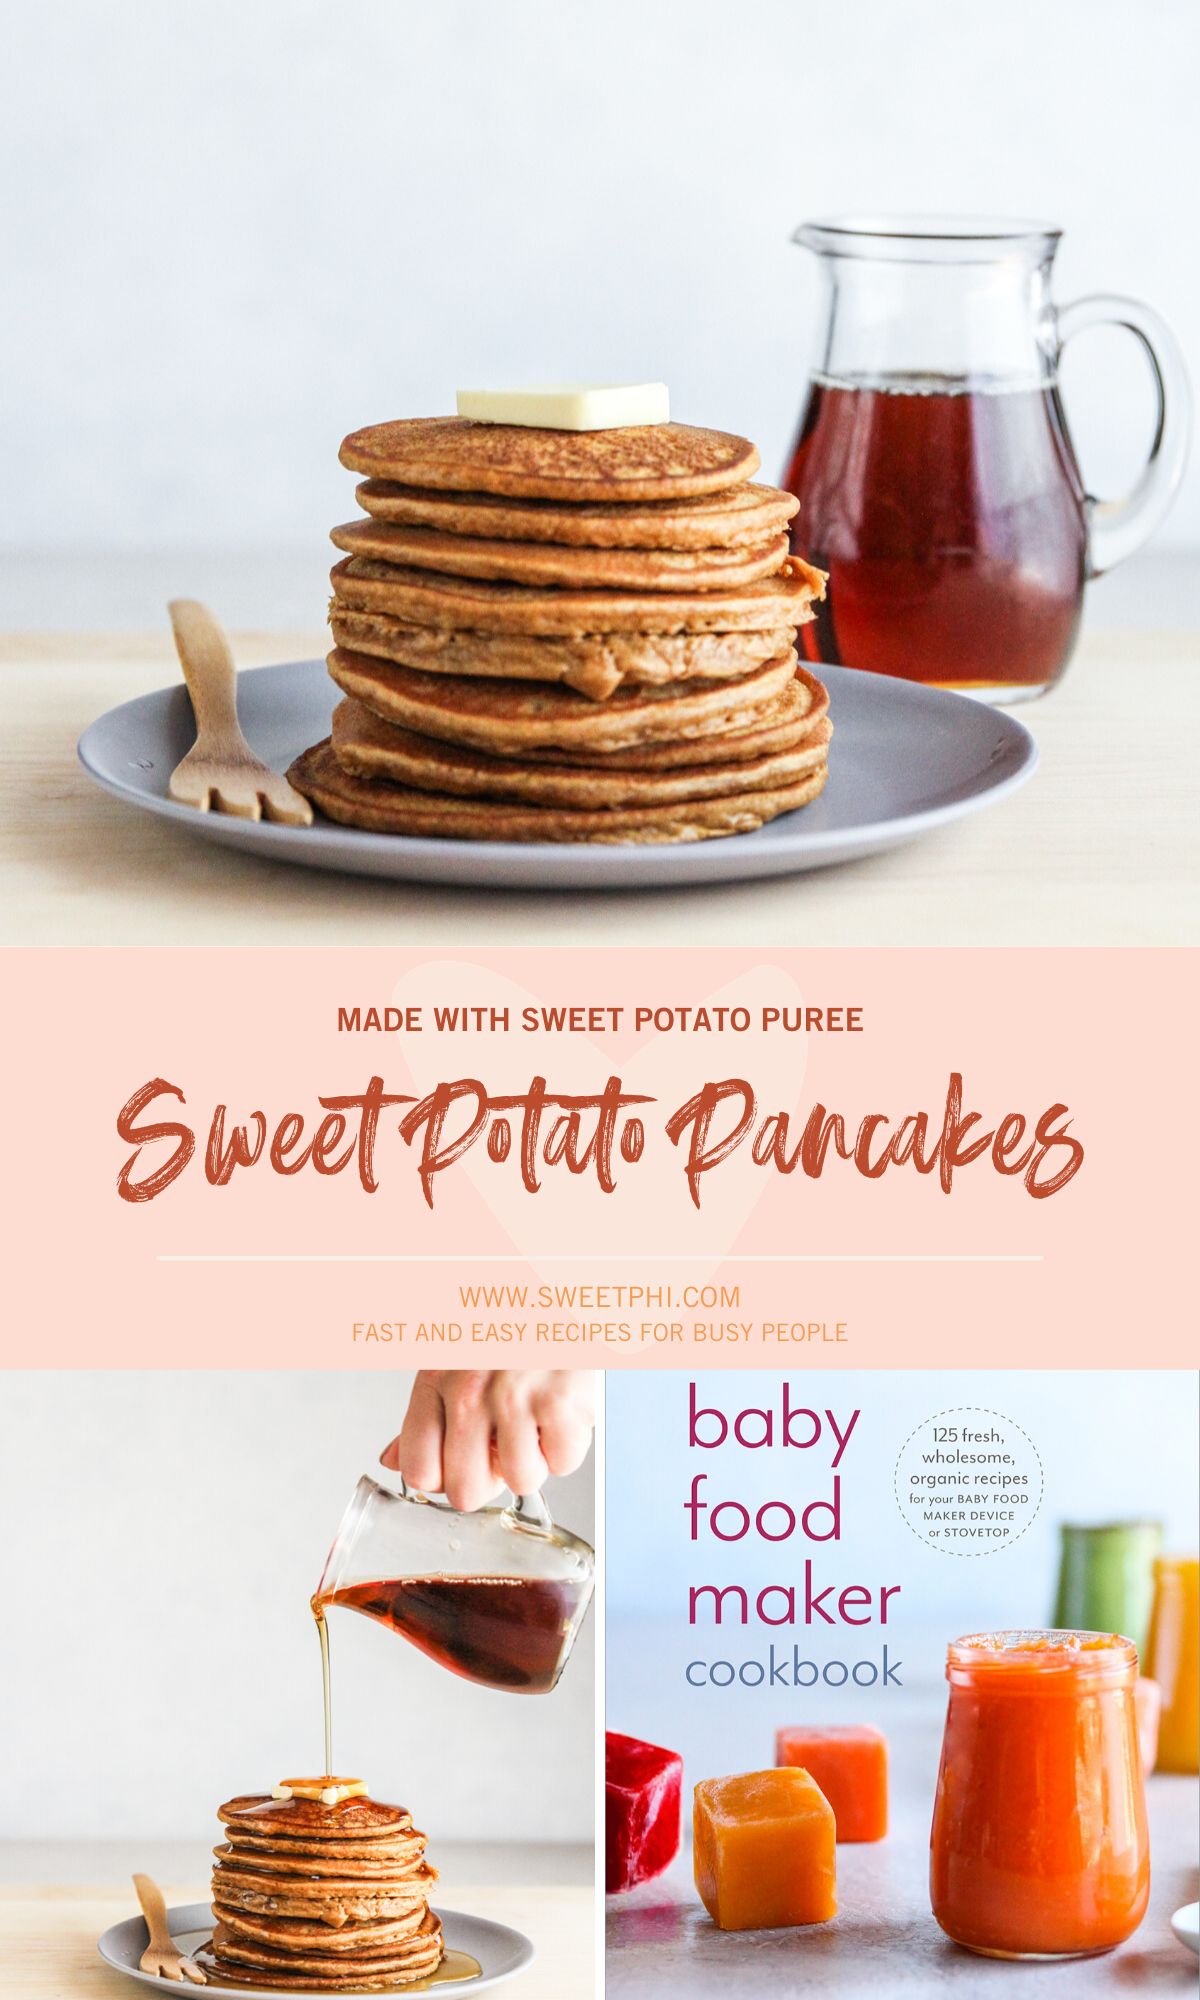 The most delicious sweet potato pancakes made with sweet potato puree